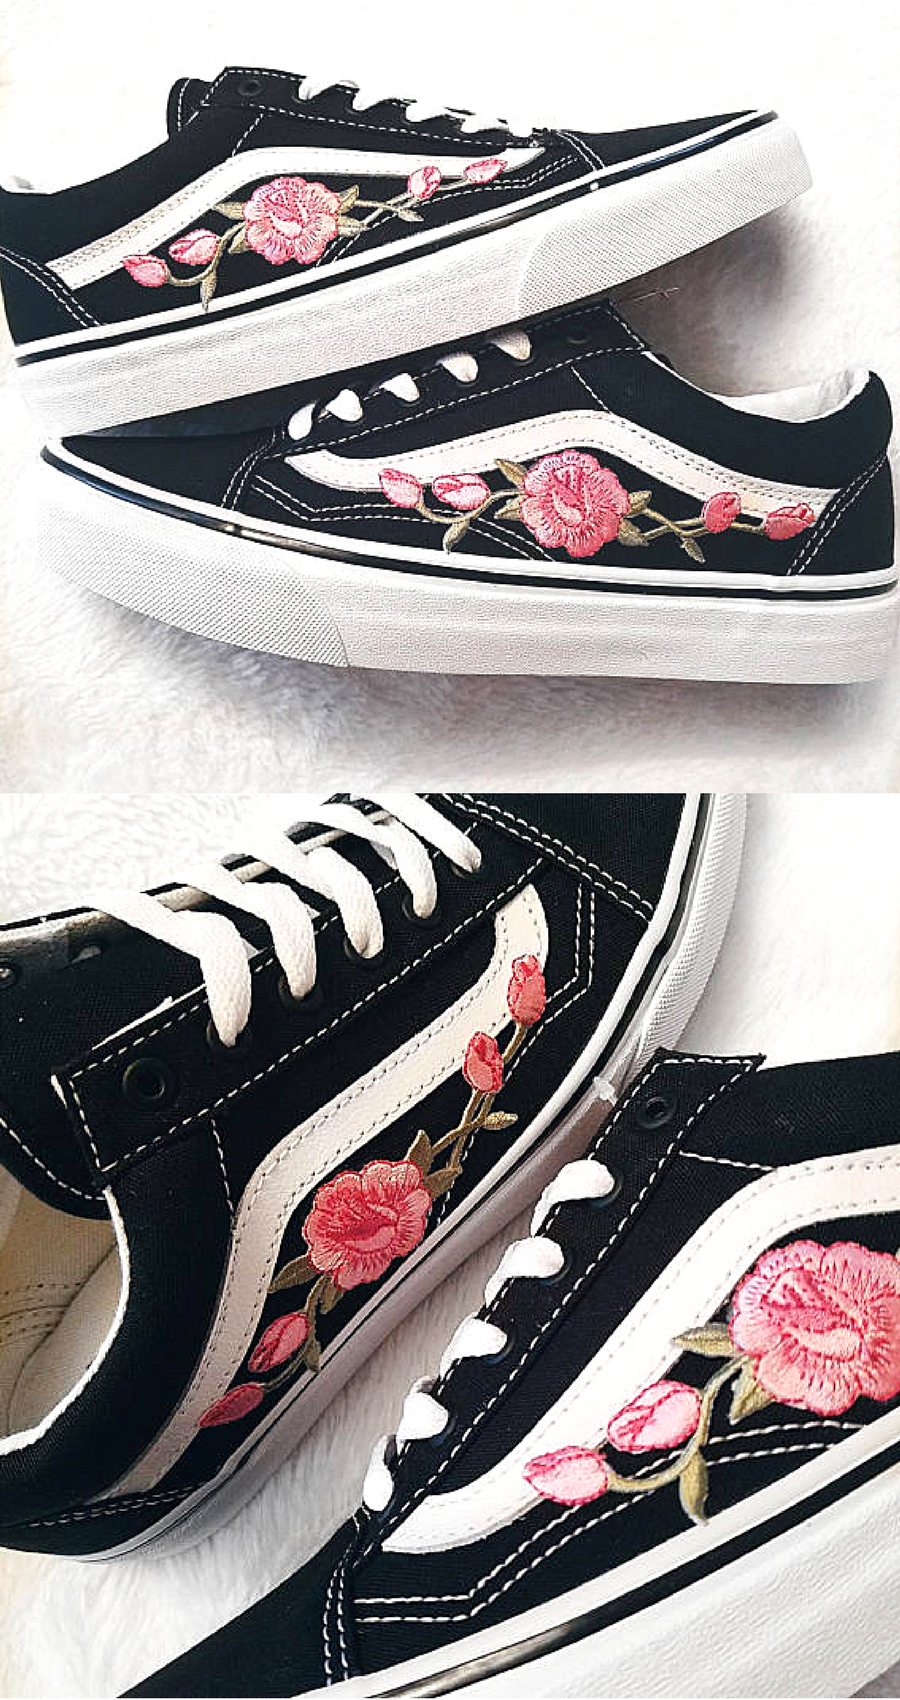 99 Rose Buds Pink Blk Unisex Custom Rose Embroidered-Patch Vans Old-Skool  Sneakers. Mens and Womens Size Available. They are genuine Vans Sneakers  that are ... 7b0aacf4f5fb